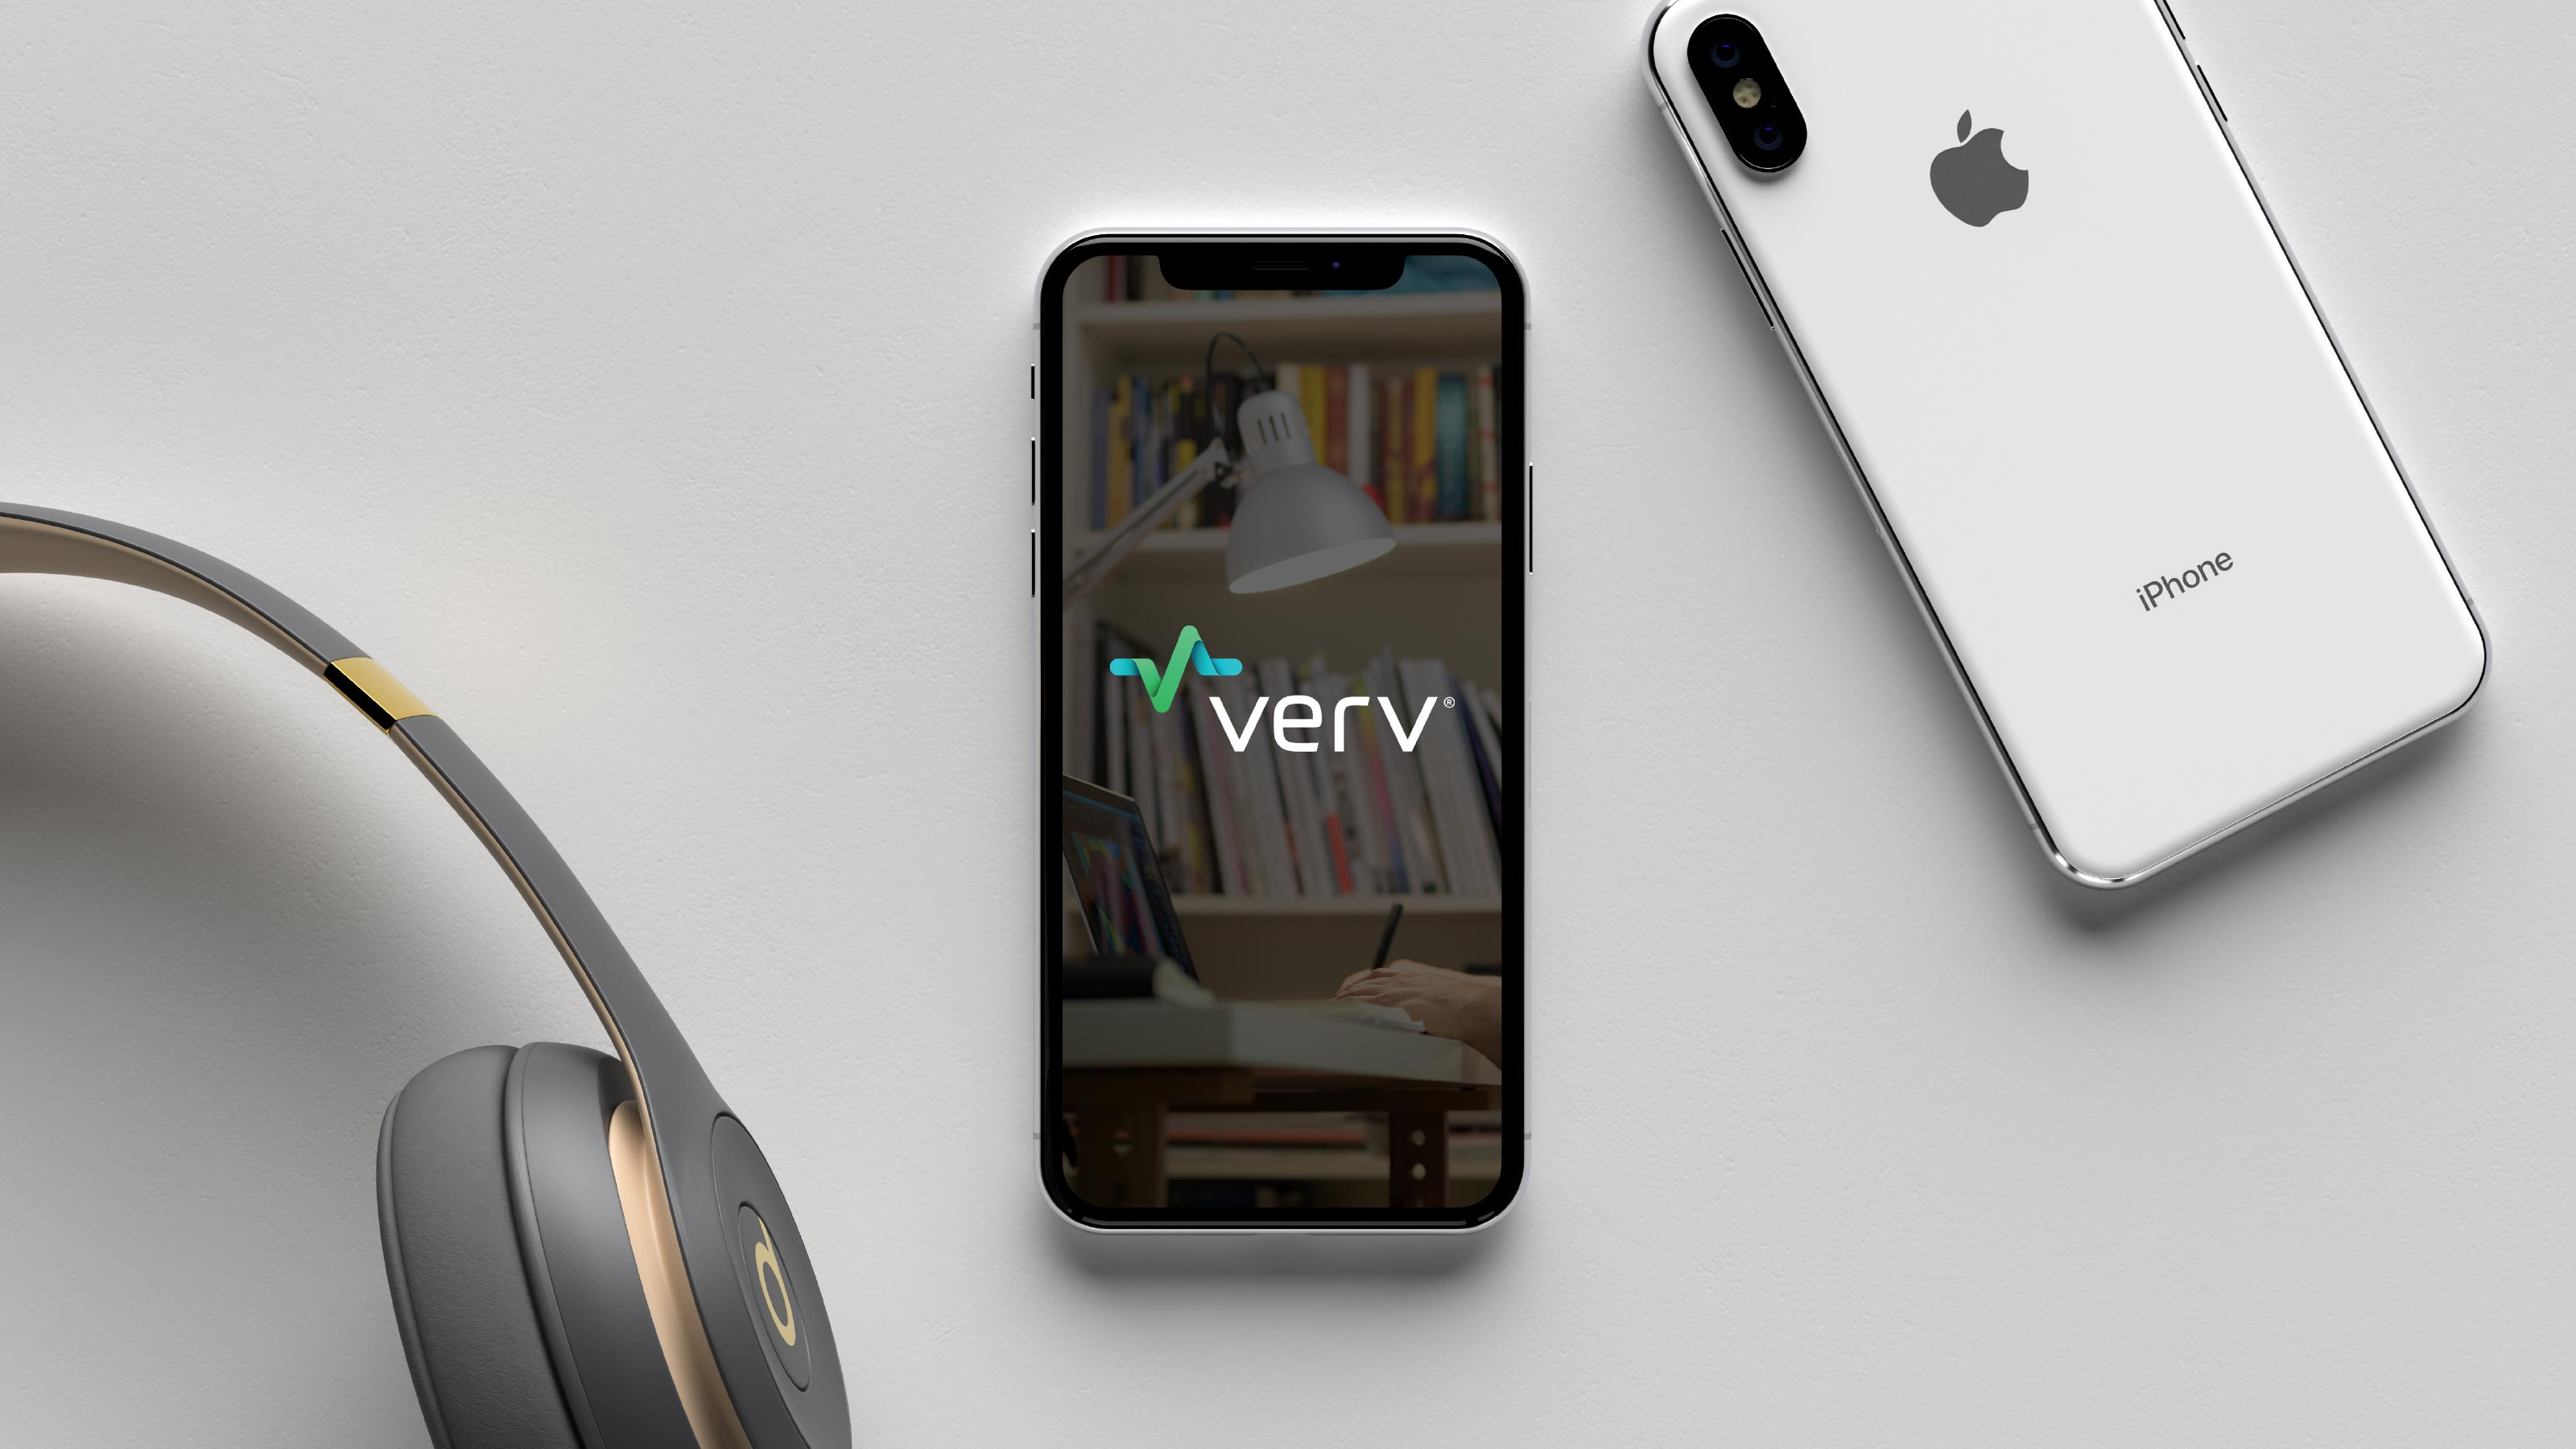 Brand mobile device Verv